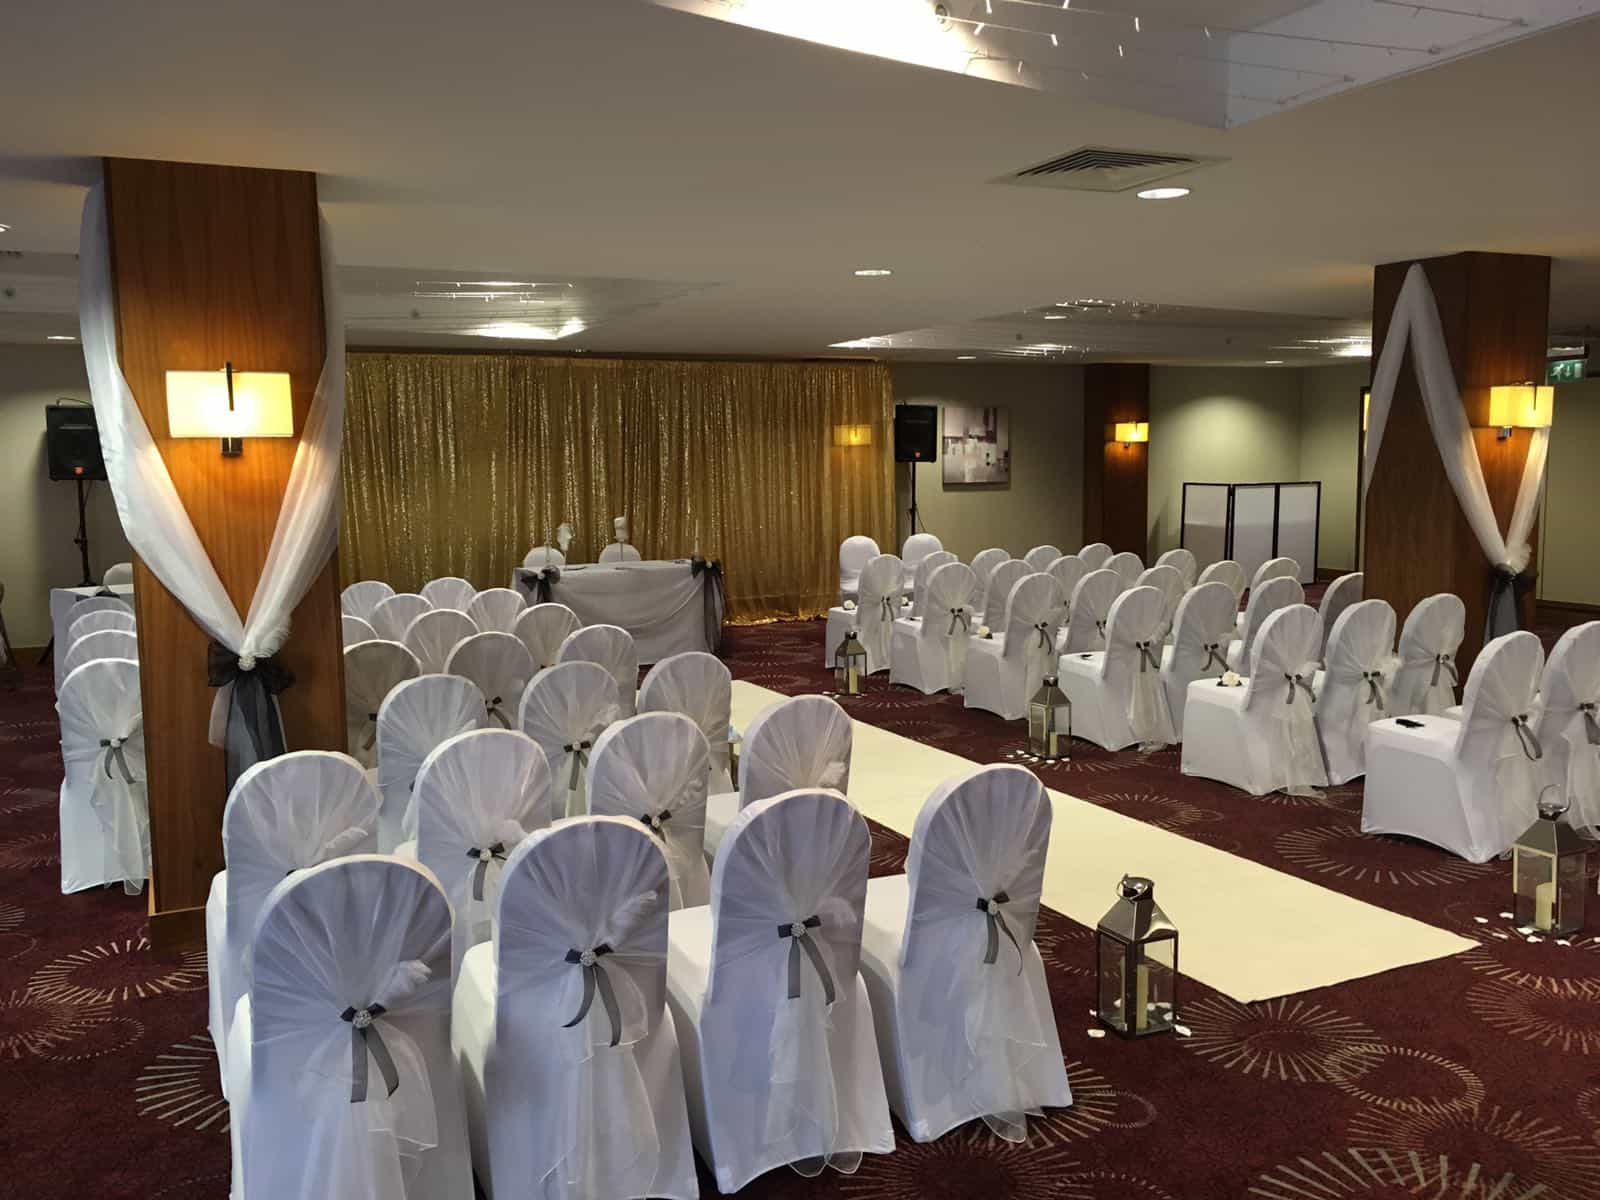 Wedding ceremony with white aisle runner surrounded by pretty white chairs